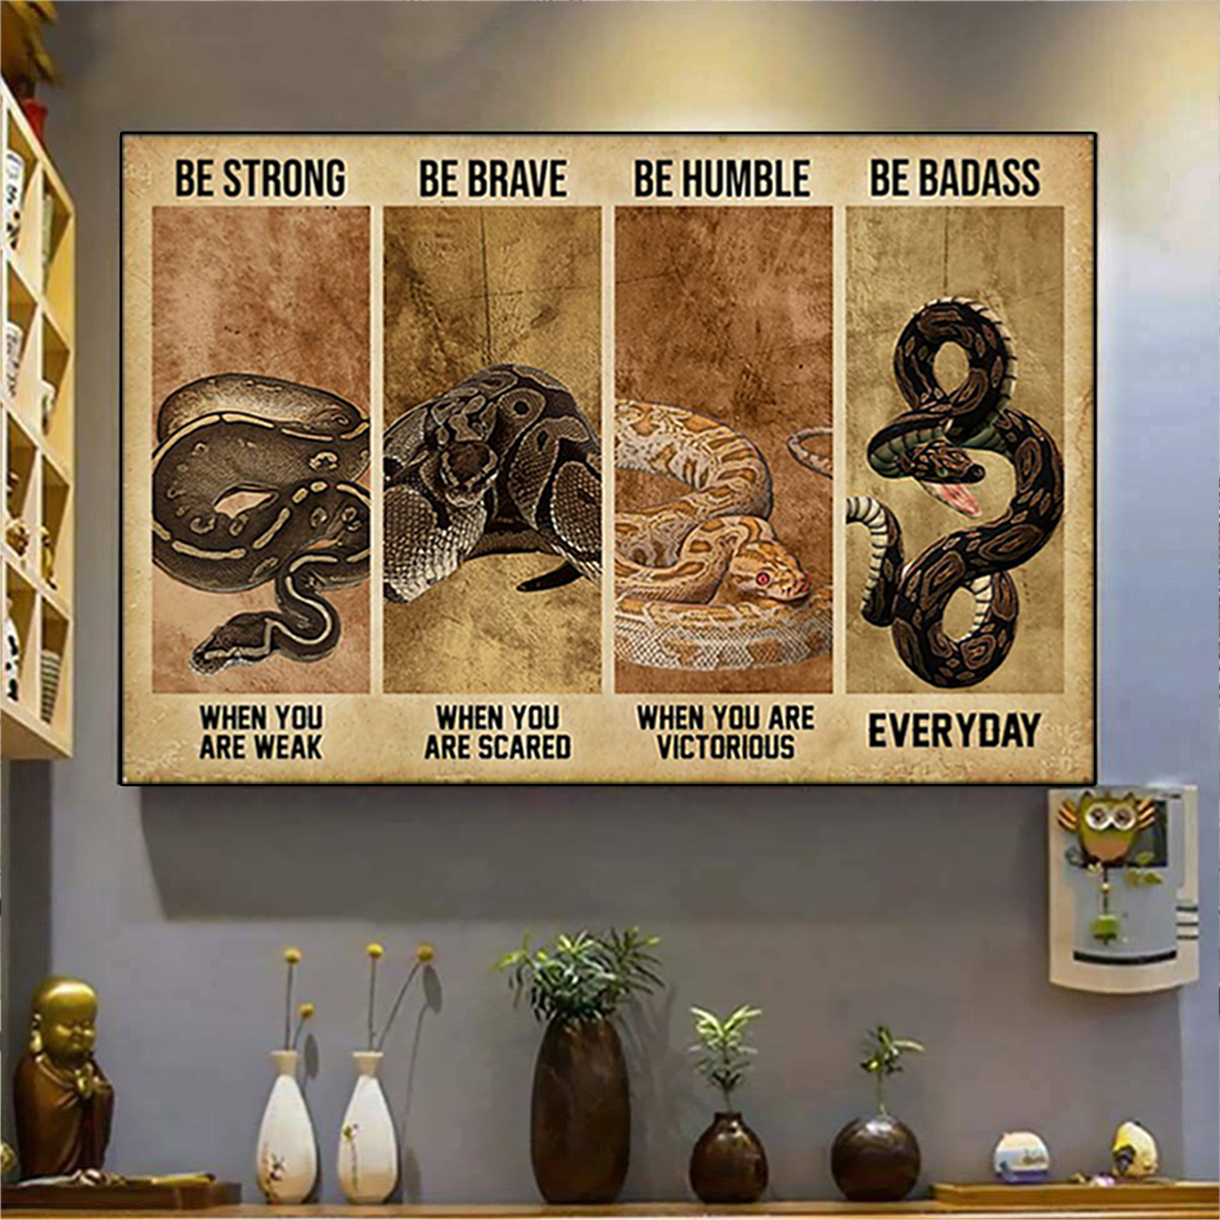 Ball python be strong be brave be humble be badass poster A3